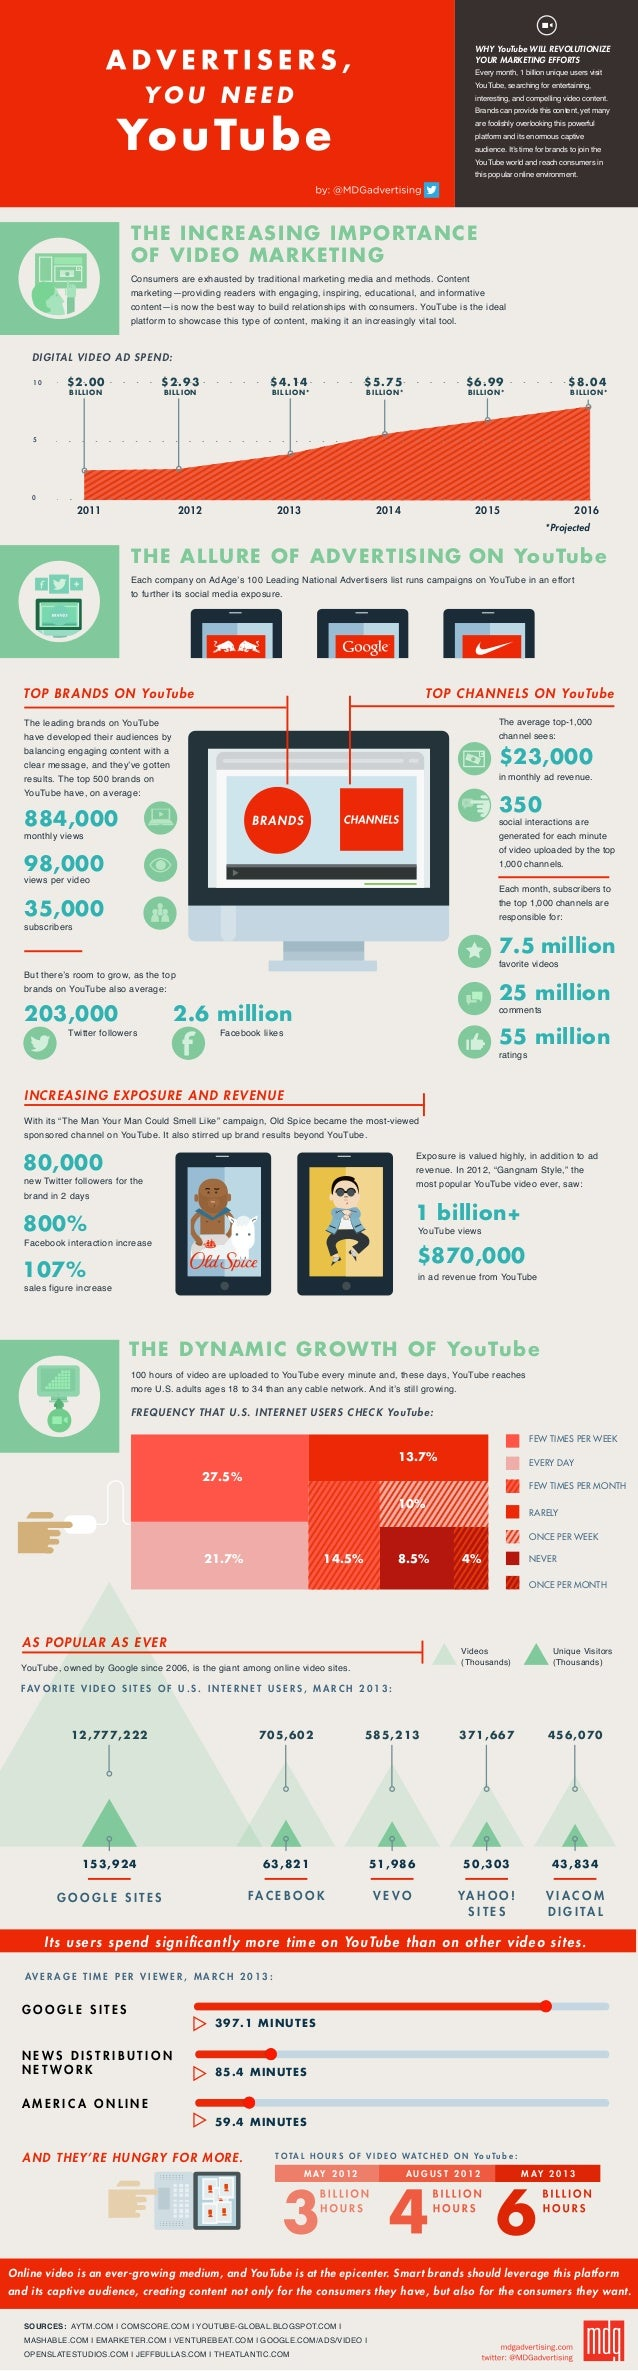 YouTubeEvery month, 1 billion unique users visitYouTube, searching for entertaining,interesting, and compelling video cont...